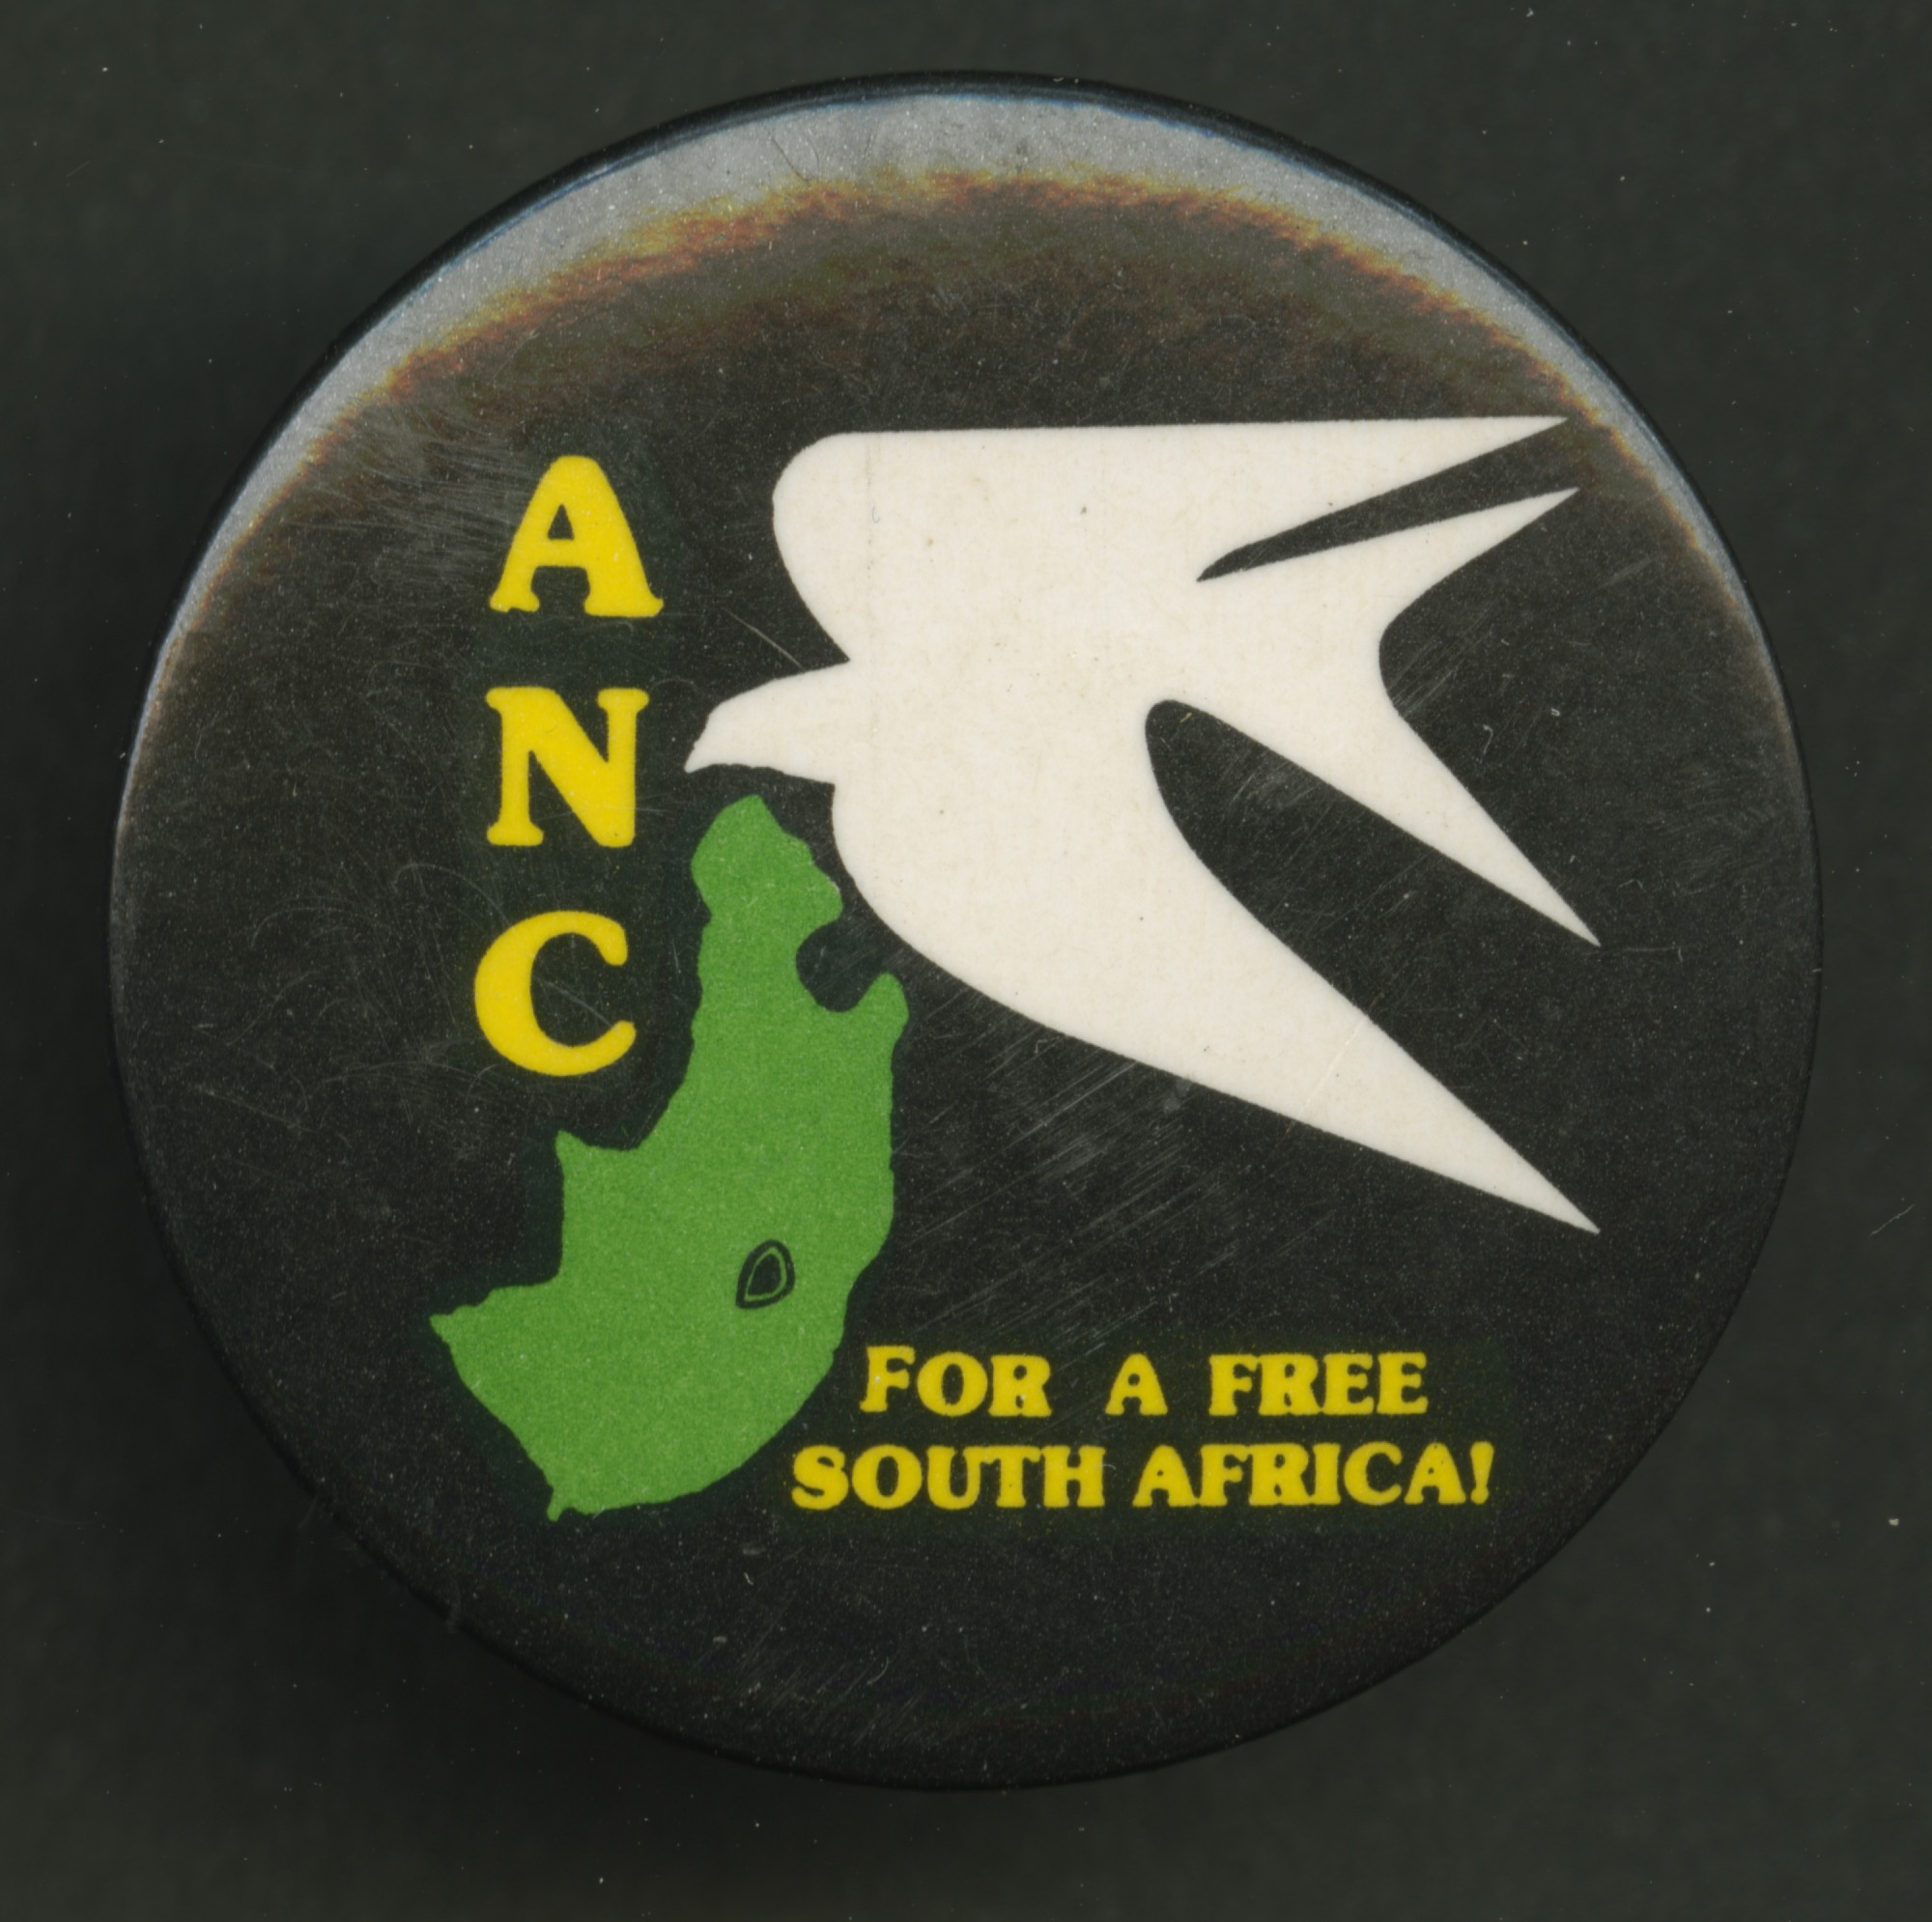 images for Pinback button promoting the ANC and a free South Africa